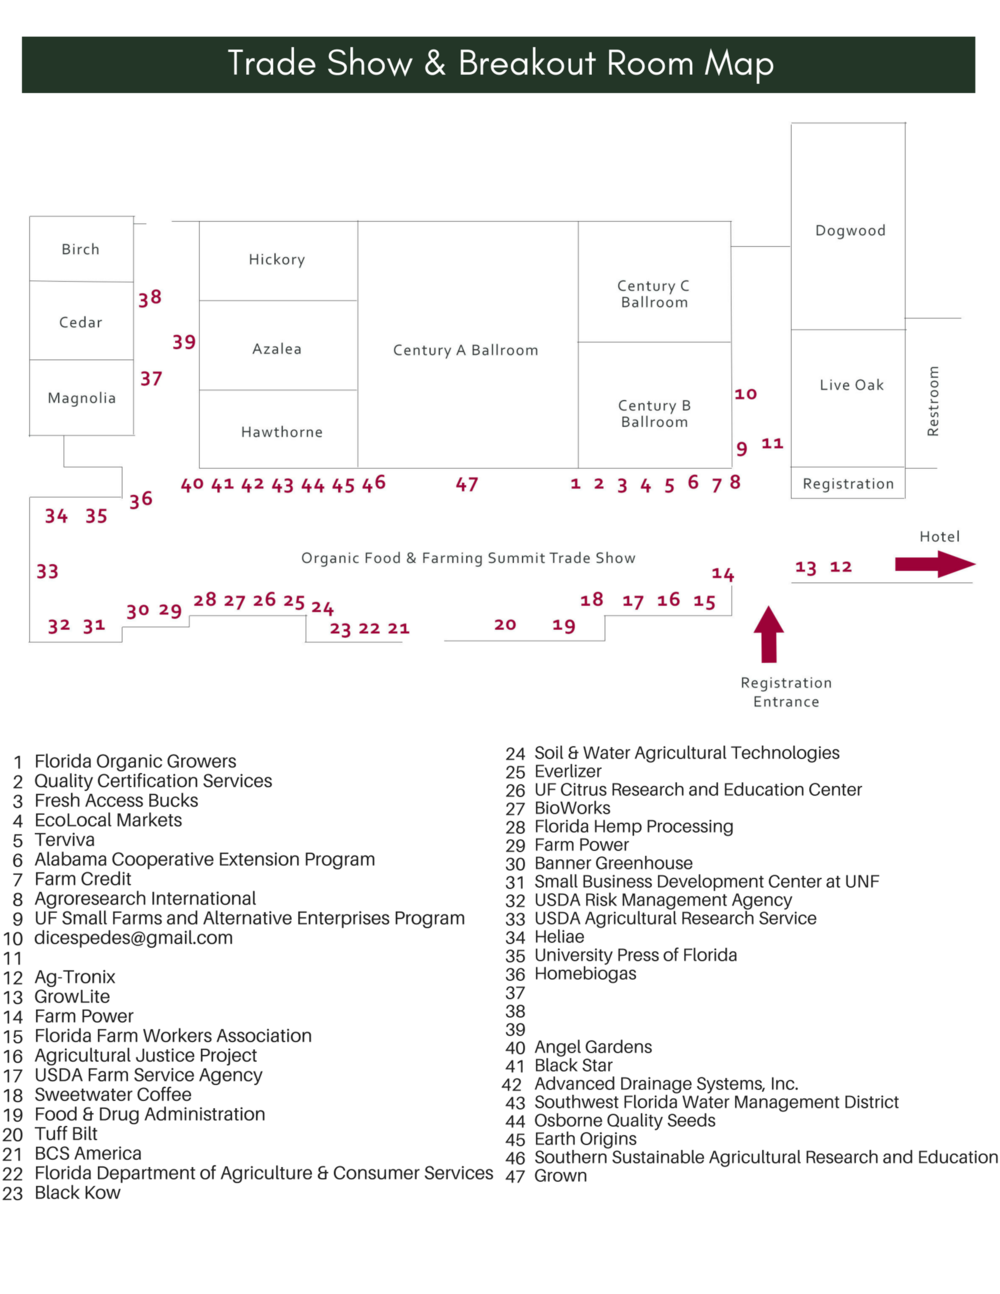 Trade show map (3).png